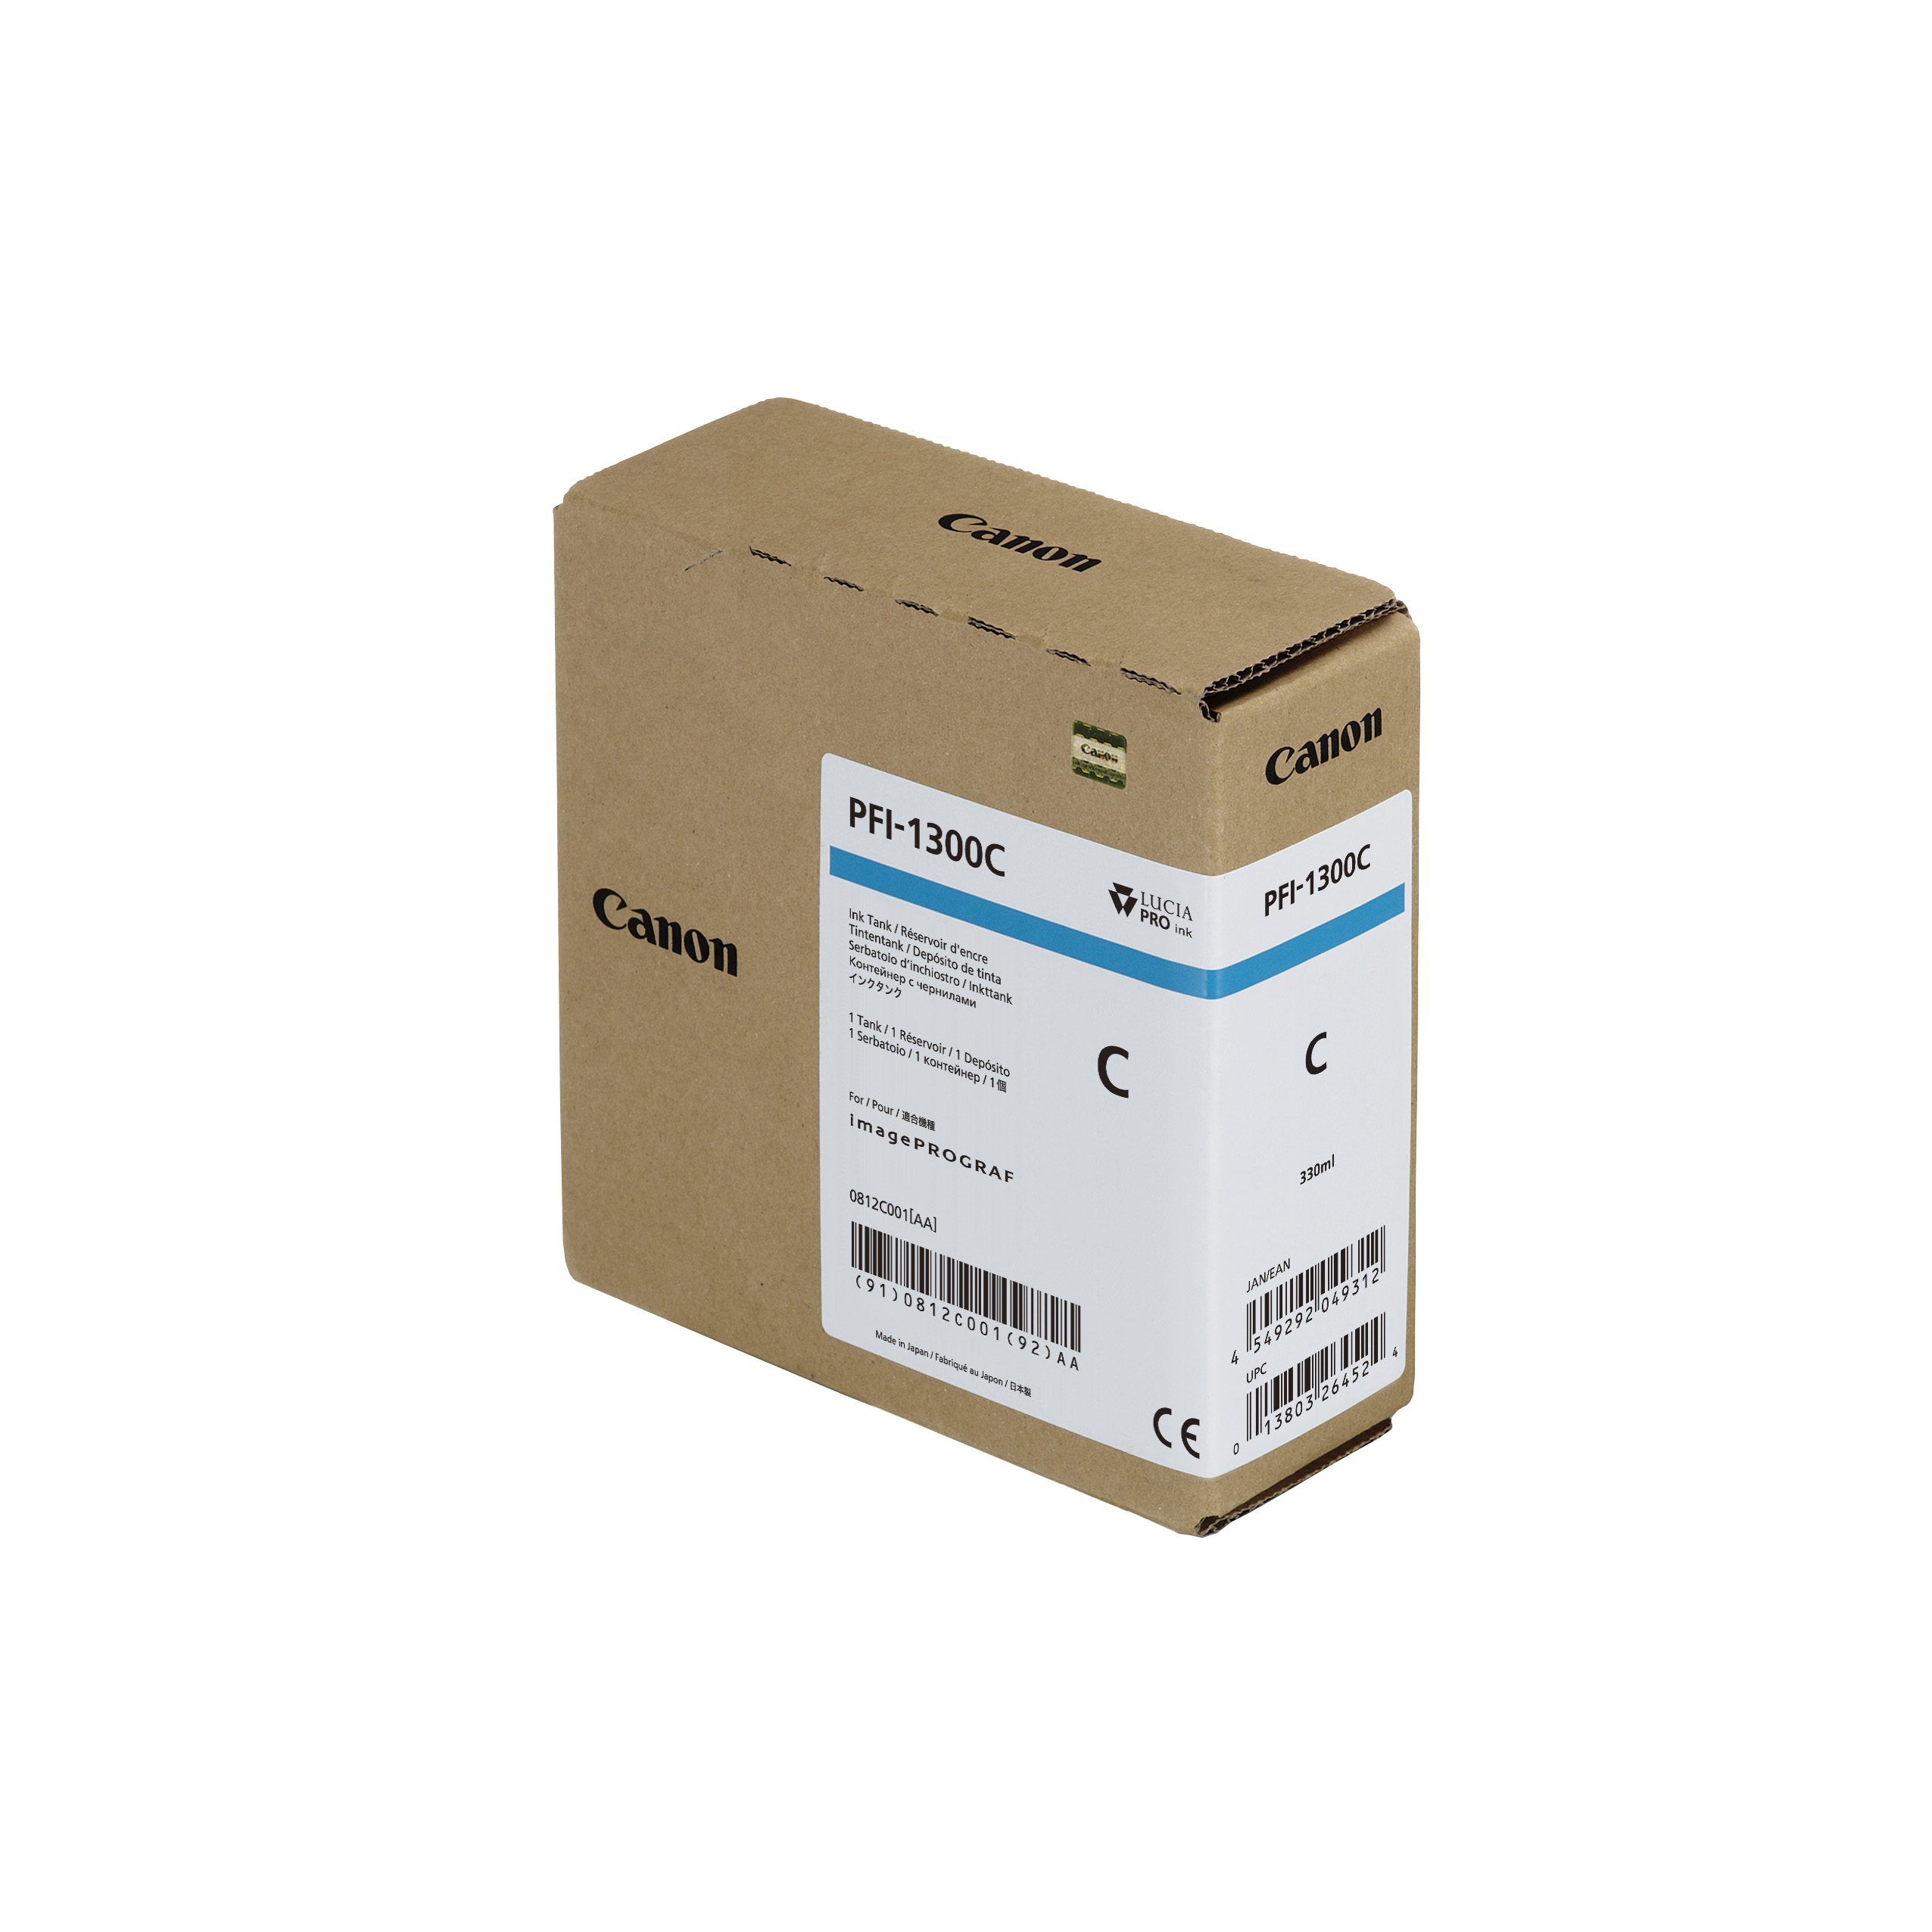 Canon PFI-1300C Cyan Ink Tank - 3300ml Cartridge - for Canon PRO-2000, PRO-4000, PRO-4000S & PRO-6000S Printer - 0812C001AA - next day delivery from GDS Graphic Design Supplies Ltd